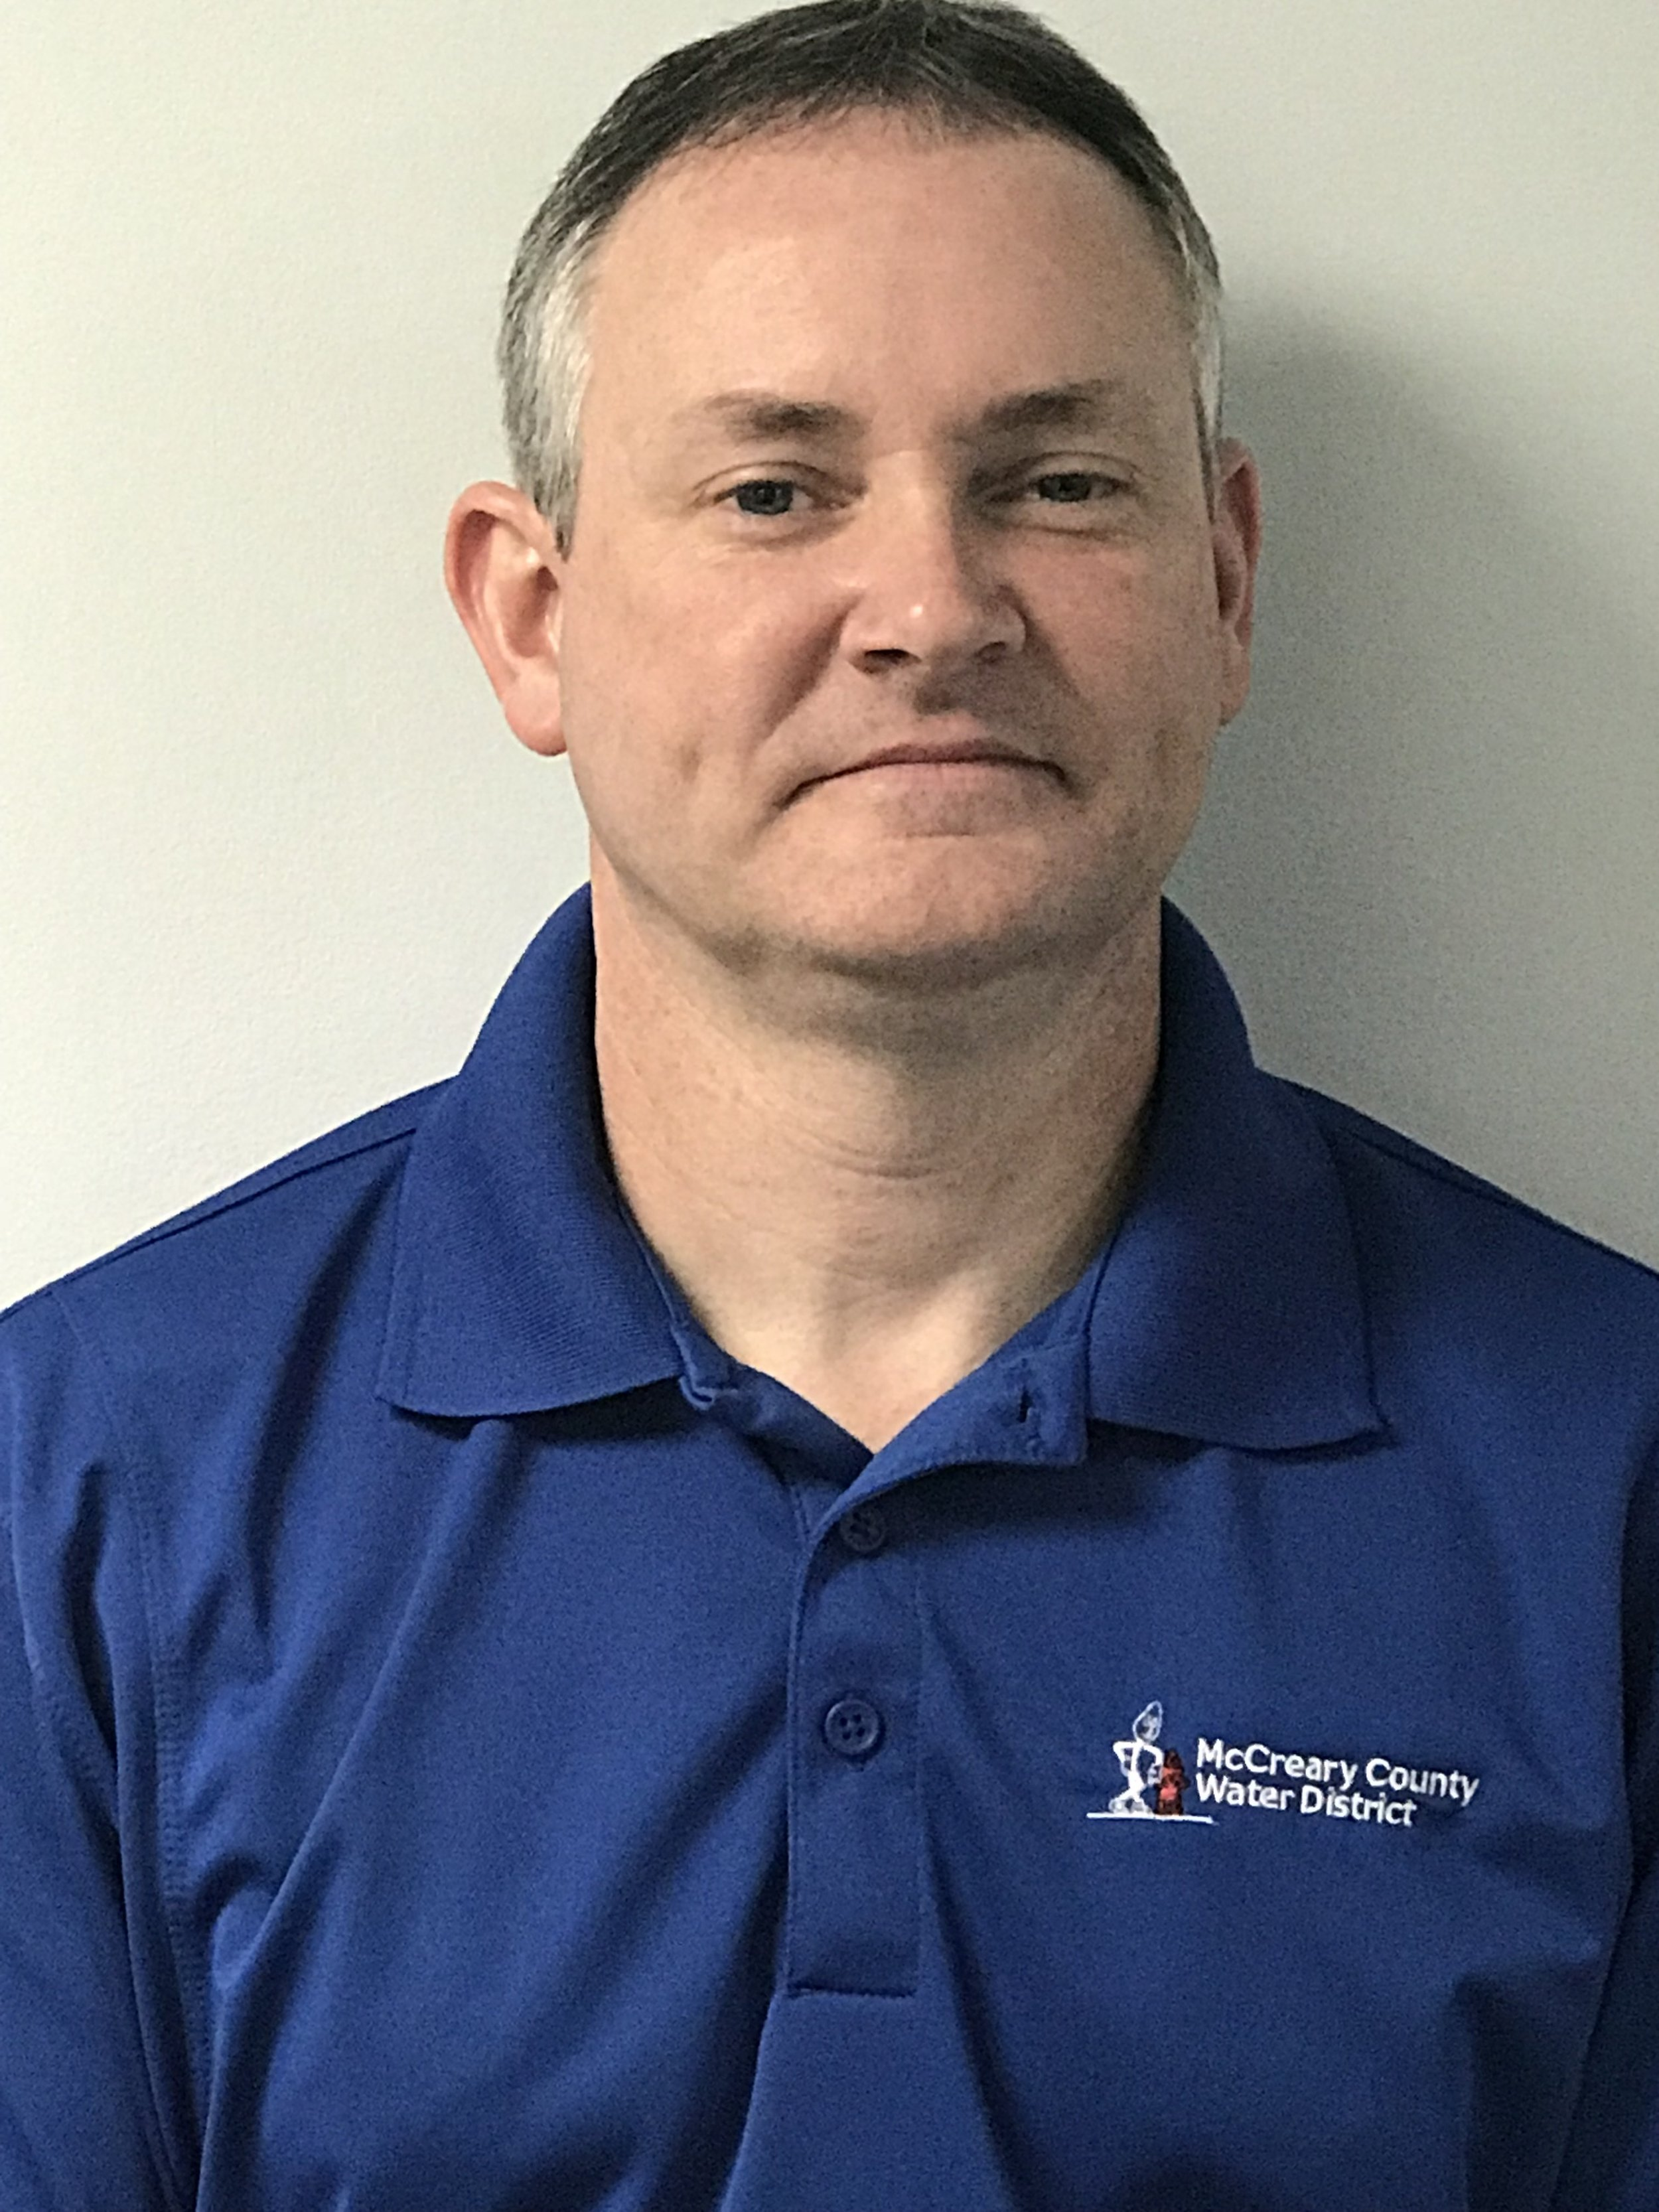 SAM STRUNK  has worked at the water district since 2003 and serves as our Office Manager. He holds Drinking Water Distribution Class IV and Land-Farm Operator Certifications. He also completed the Utility Management Institute in 2009.